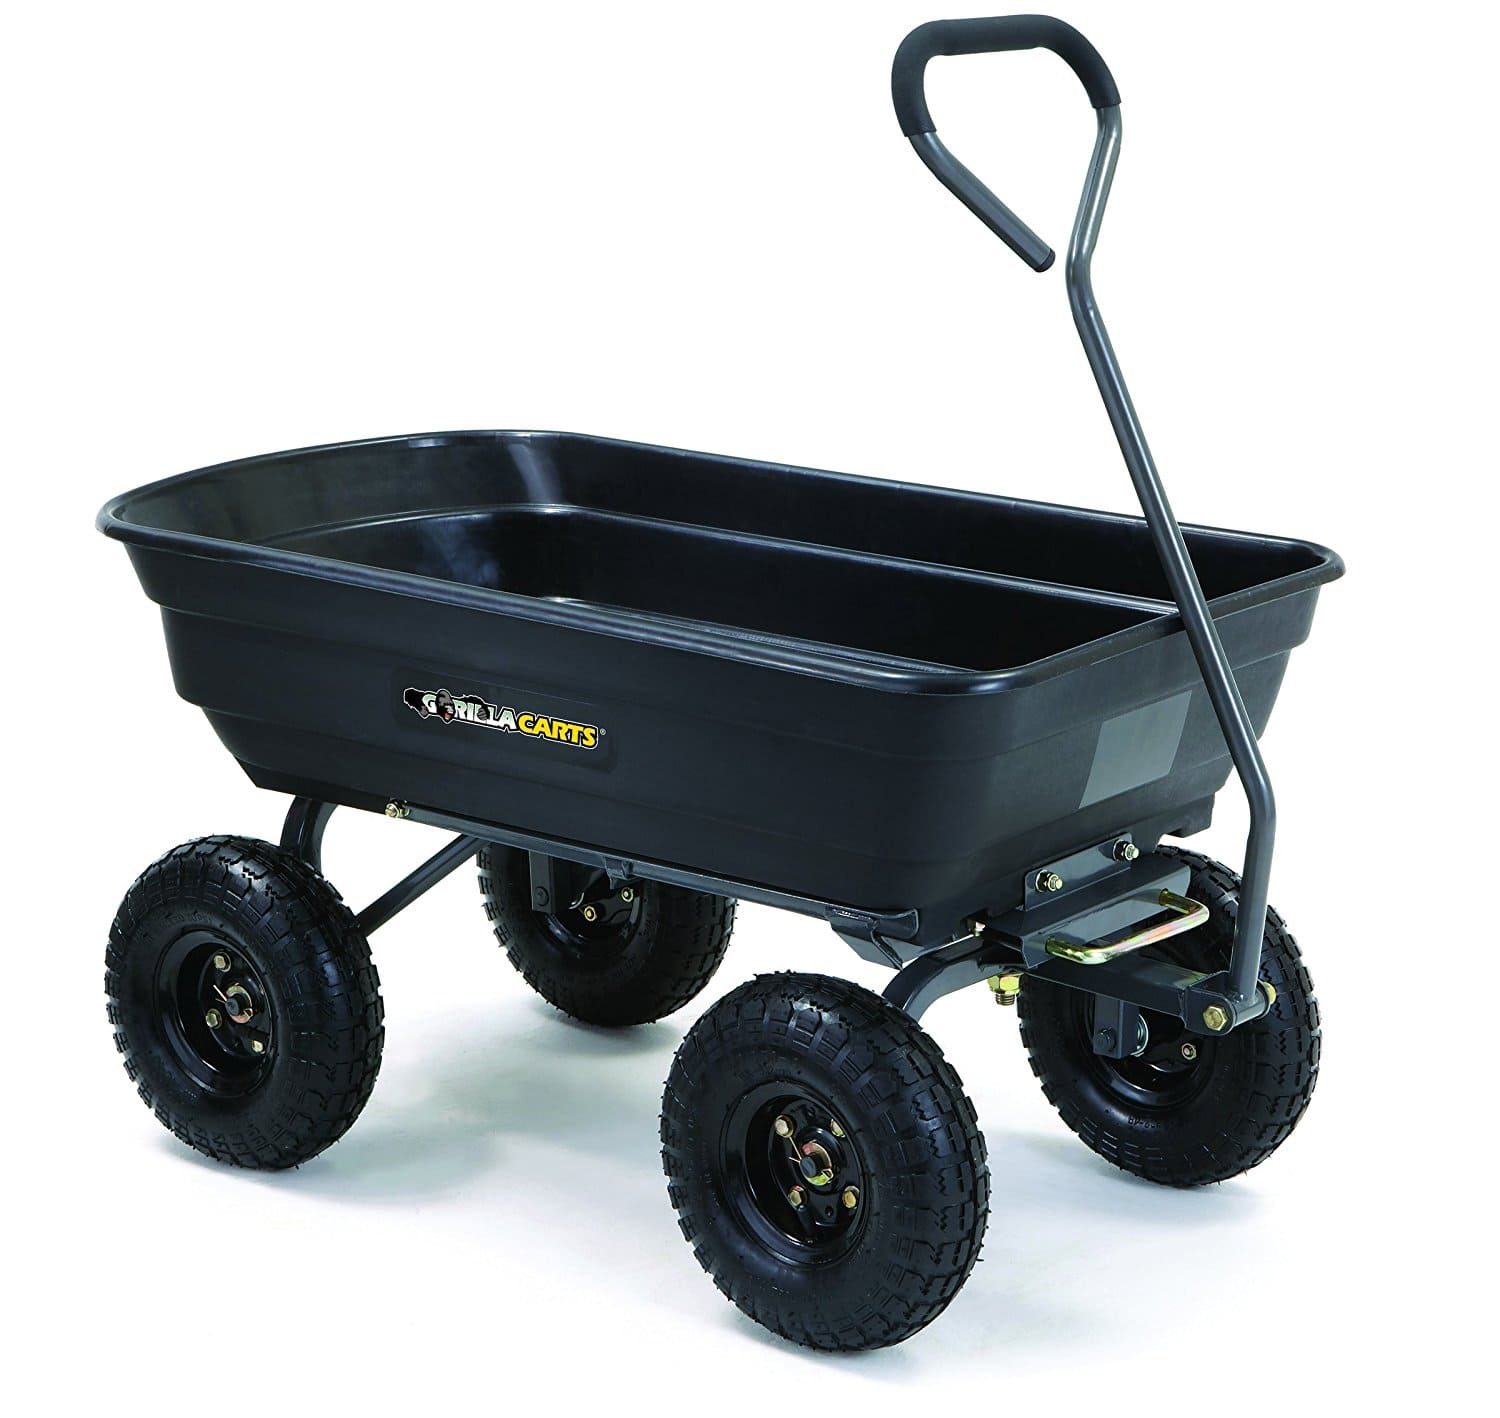 Gorilla Yard Cart with Dump. $69.98